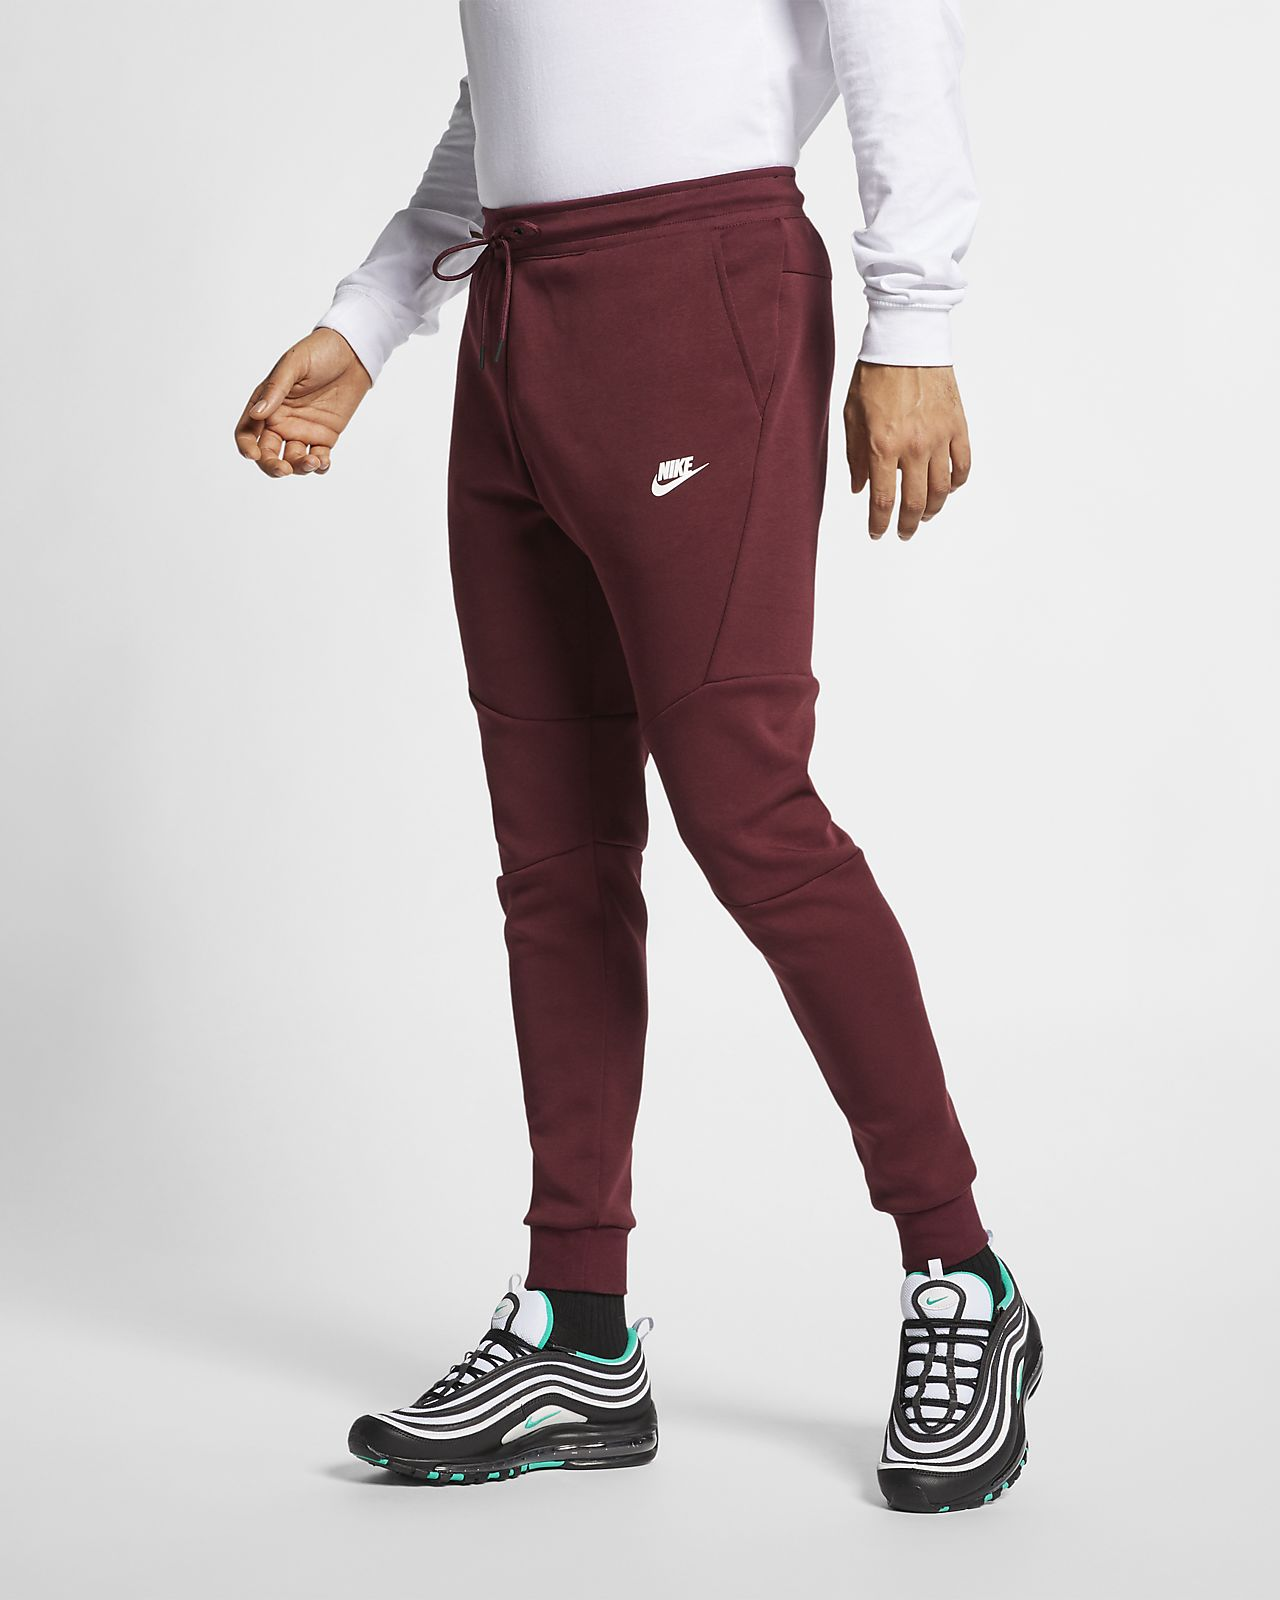 newest e623a 7d5d1 ... Pantalon de jogging Nike Sportswear Tech Fleece pour Homme